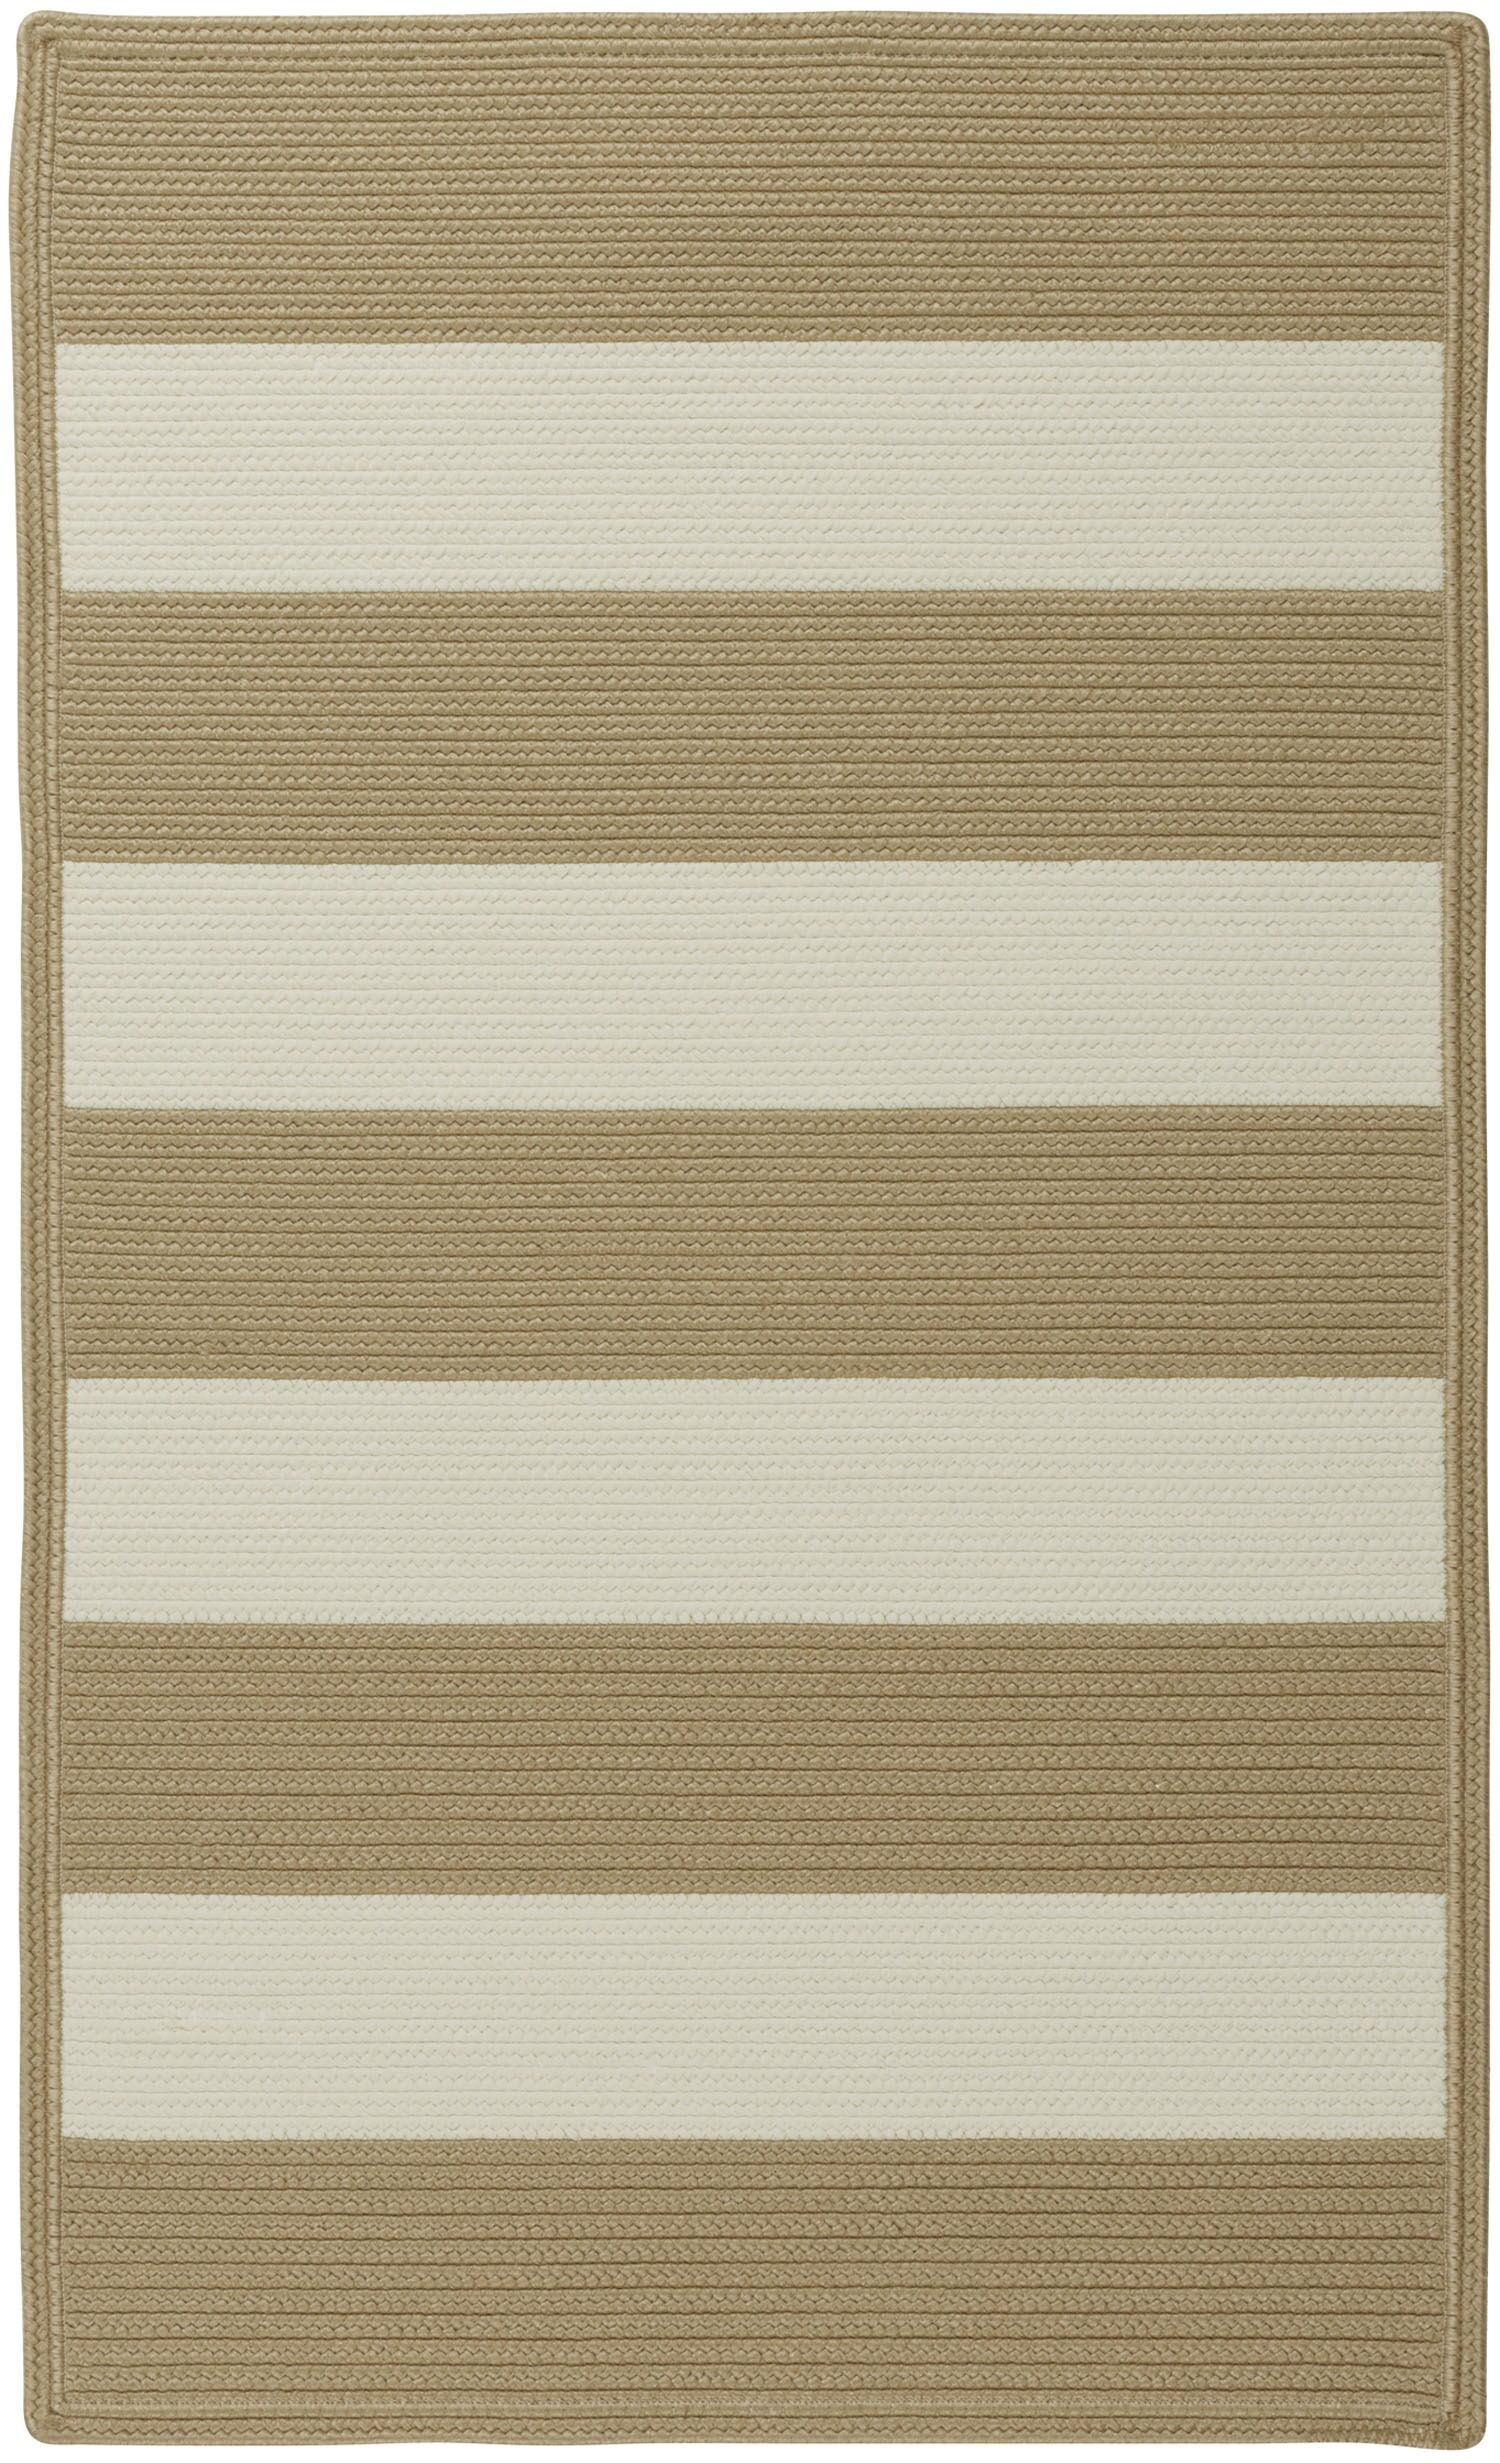 Mitscher Hand-Braided Cream Indoor/Outdoor Area Rug Rug Size: Cross Sewn 5' x 8'